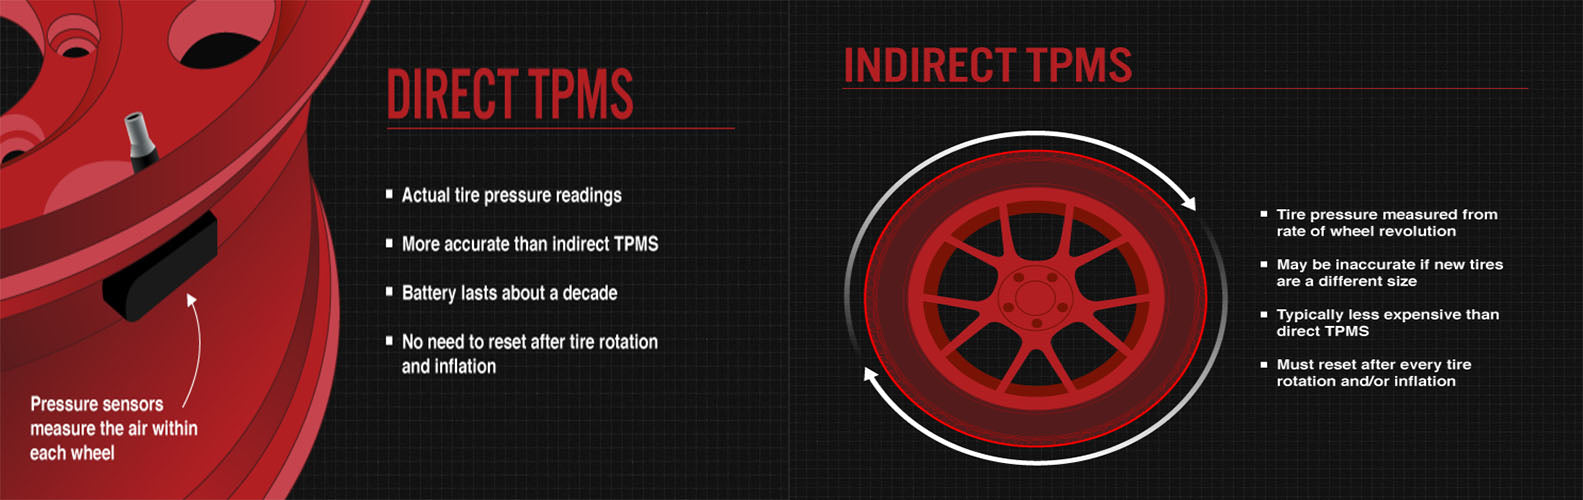 Different between Indirect TPMS and direct TPMS